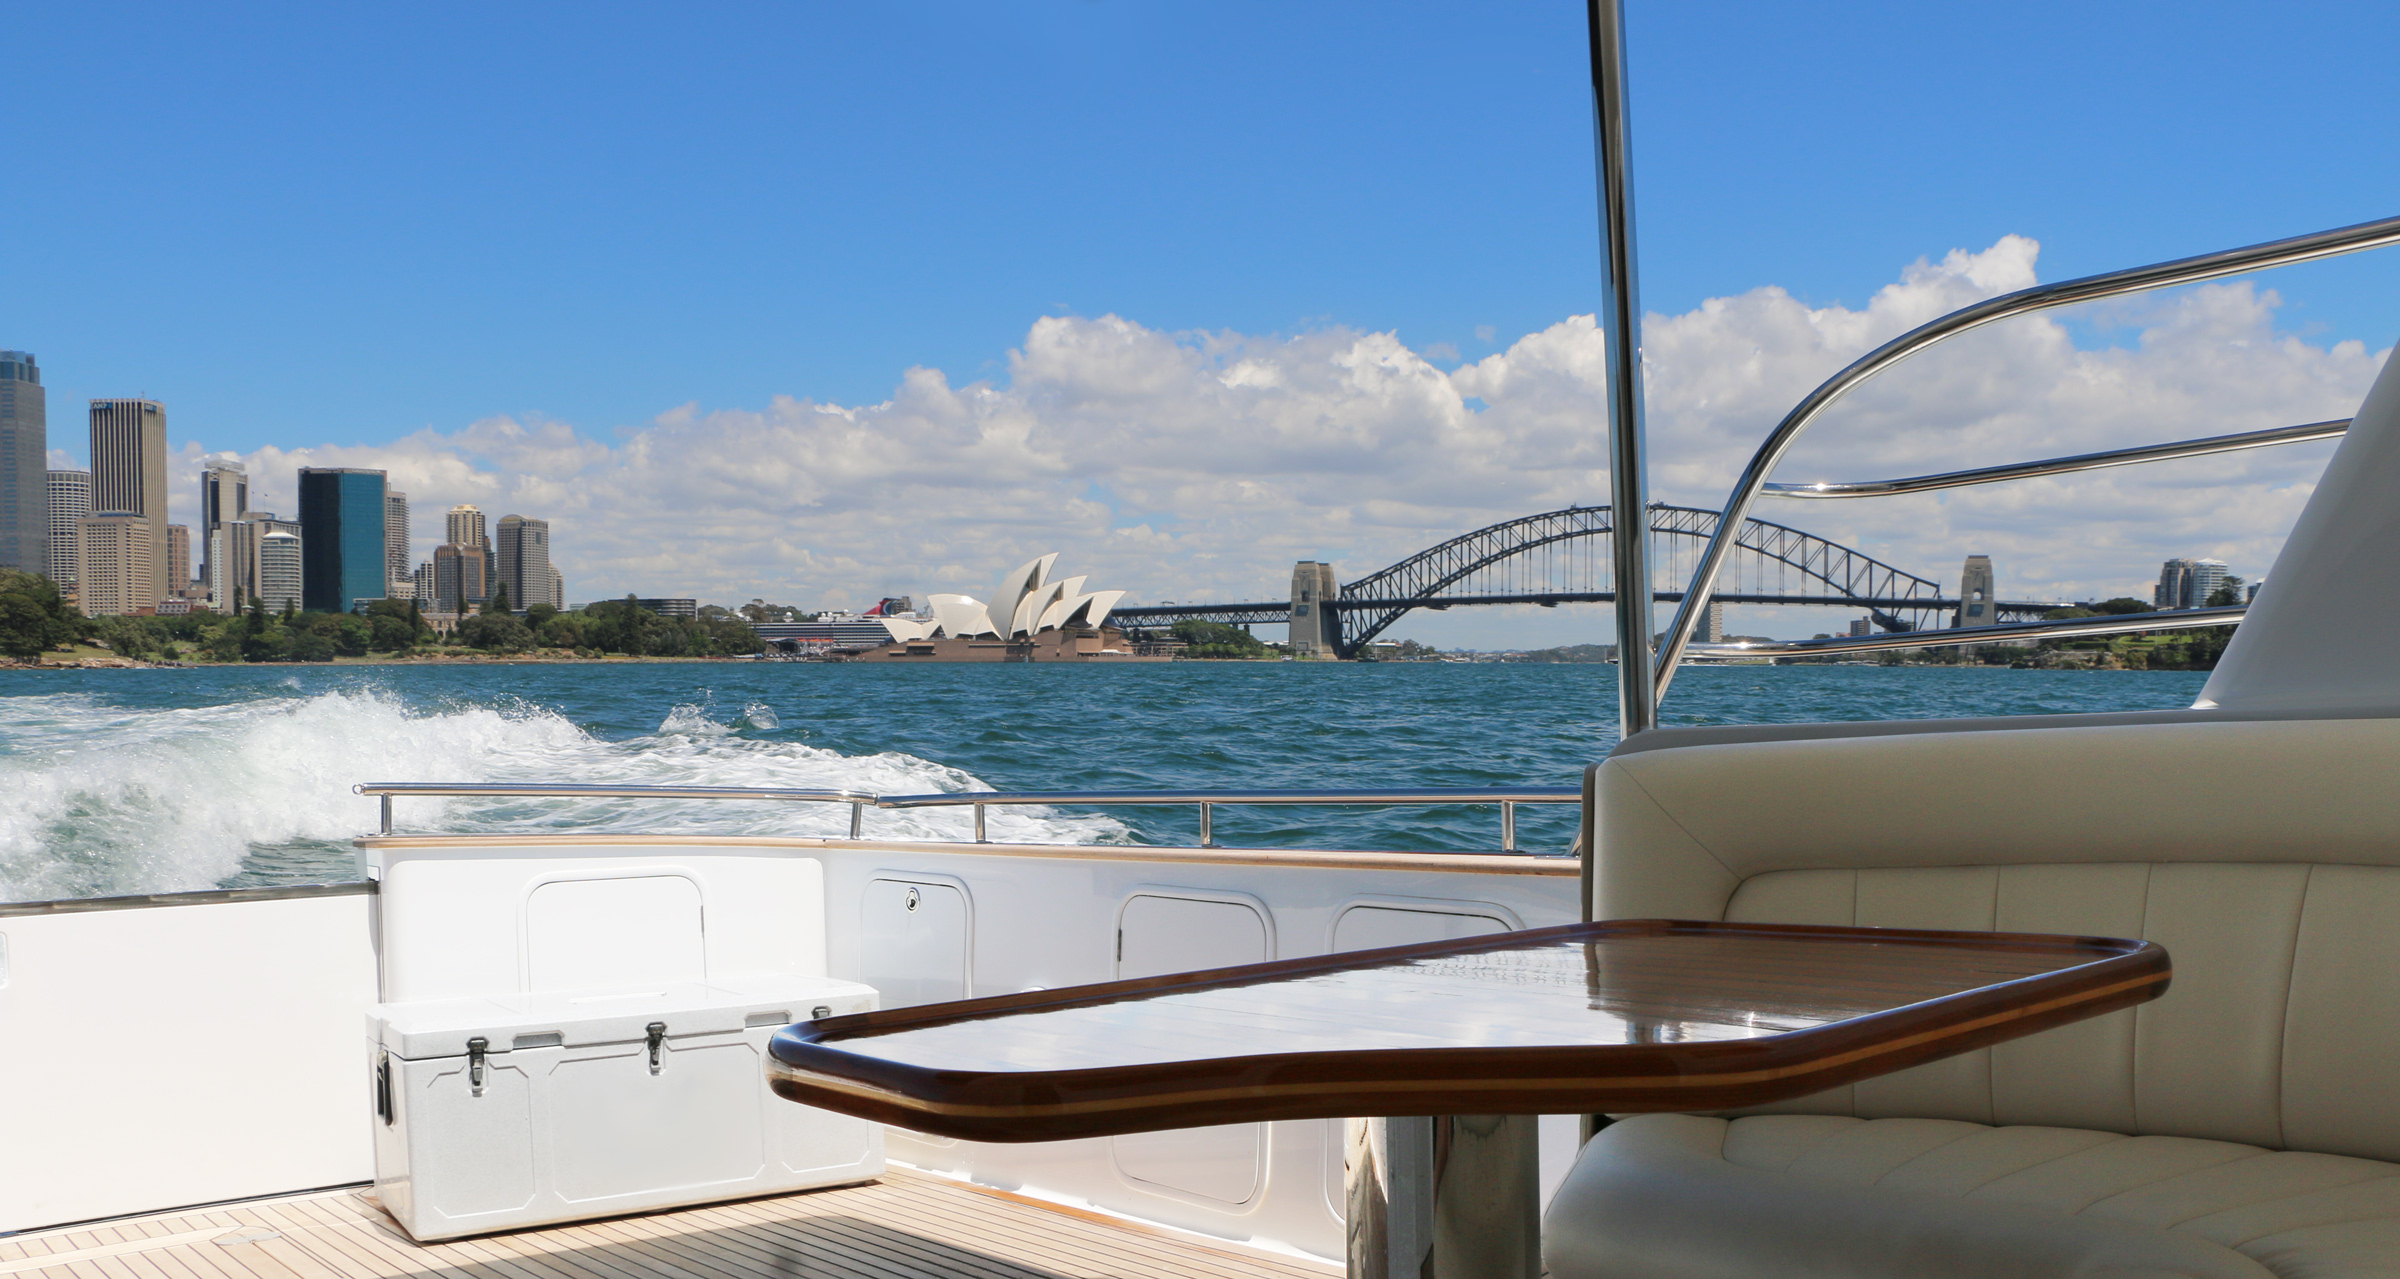 Private Charter on Sydney Harbour